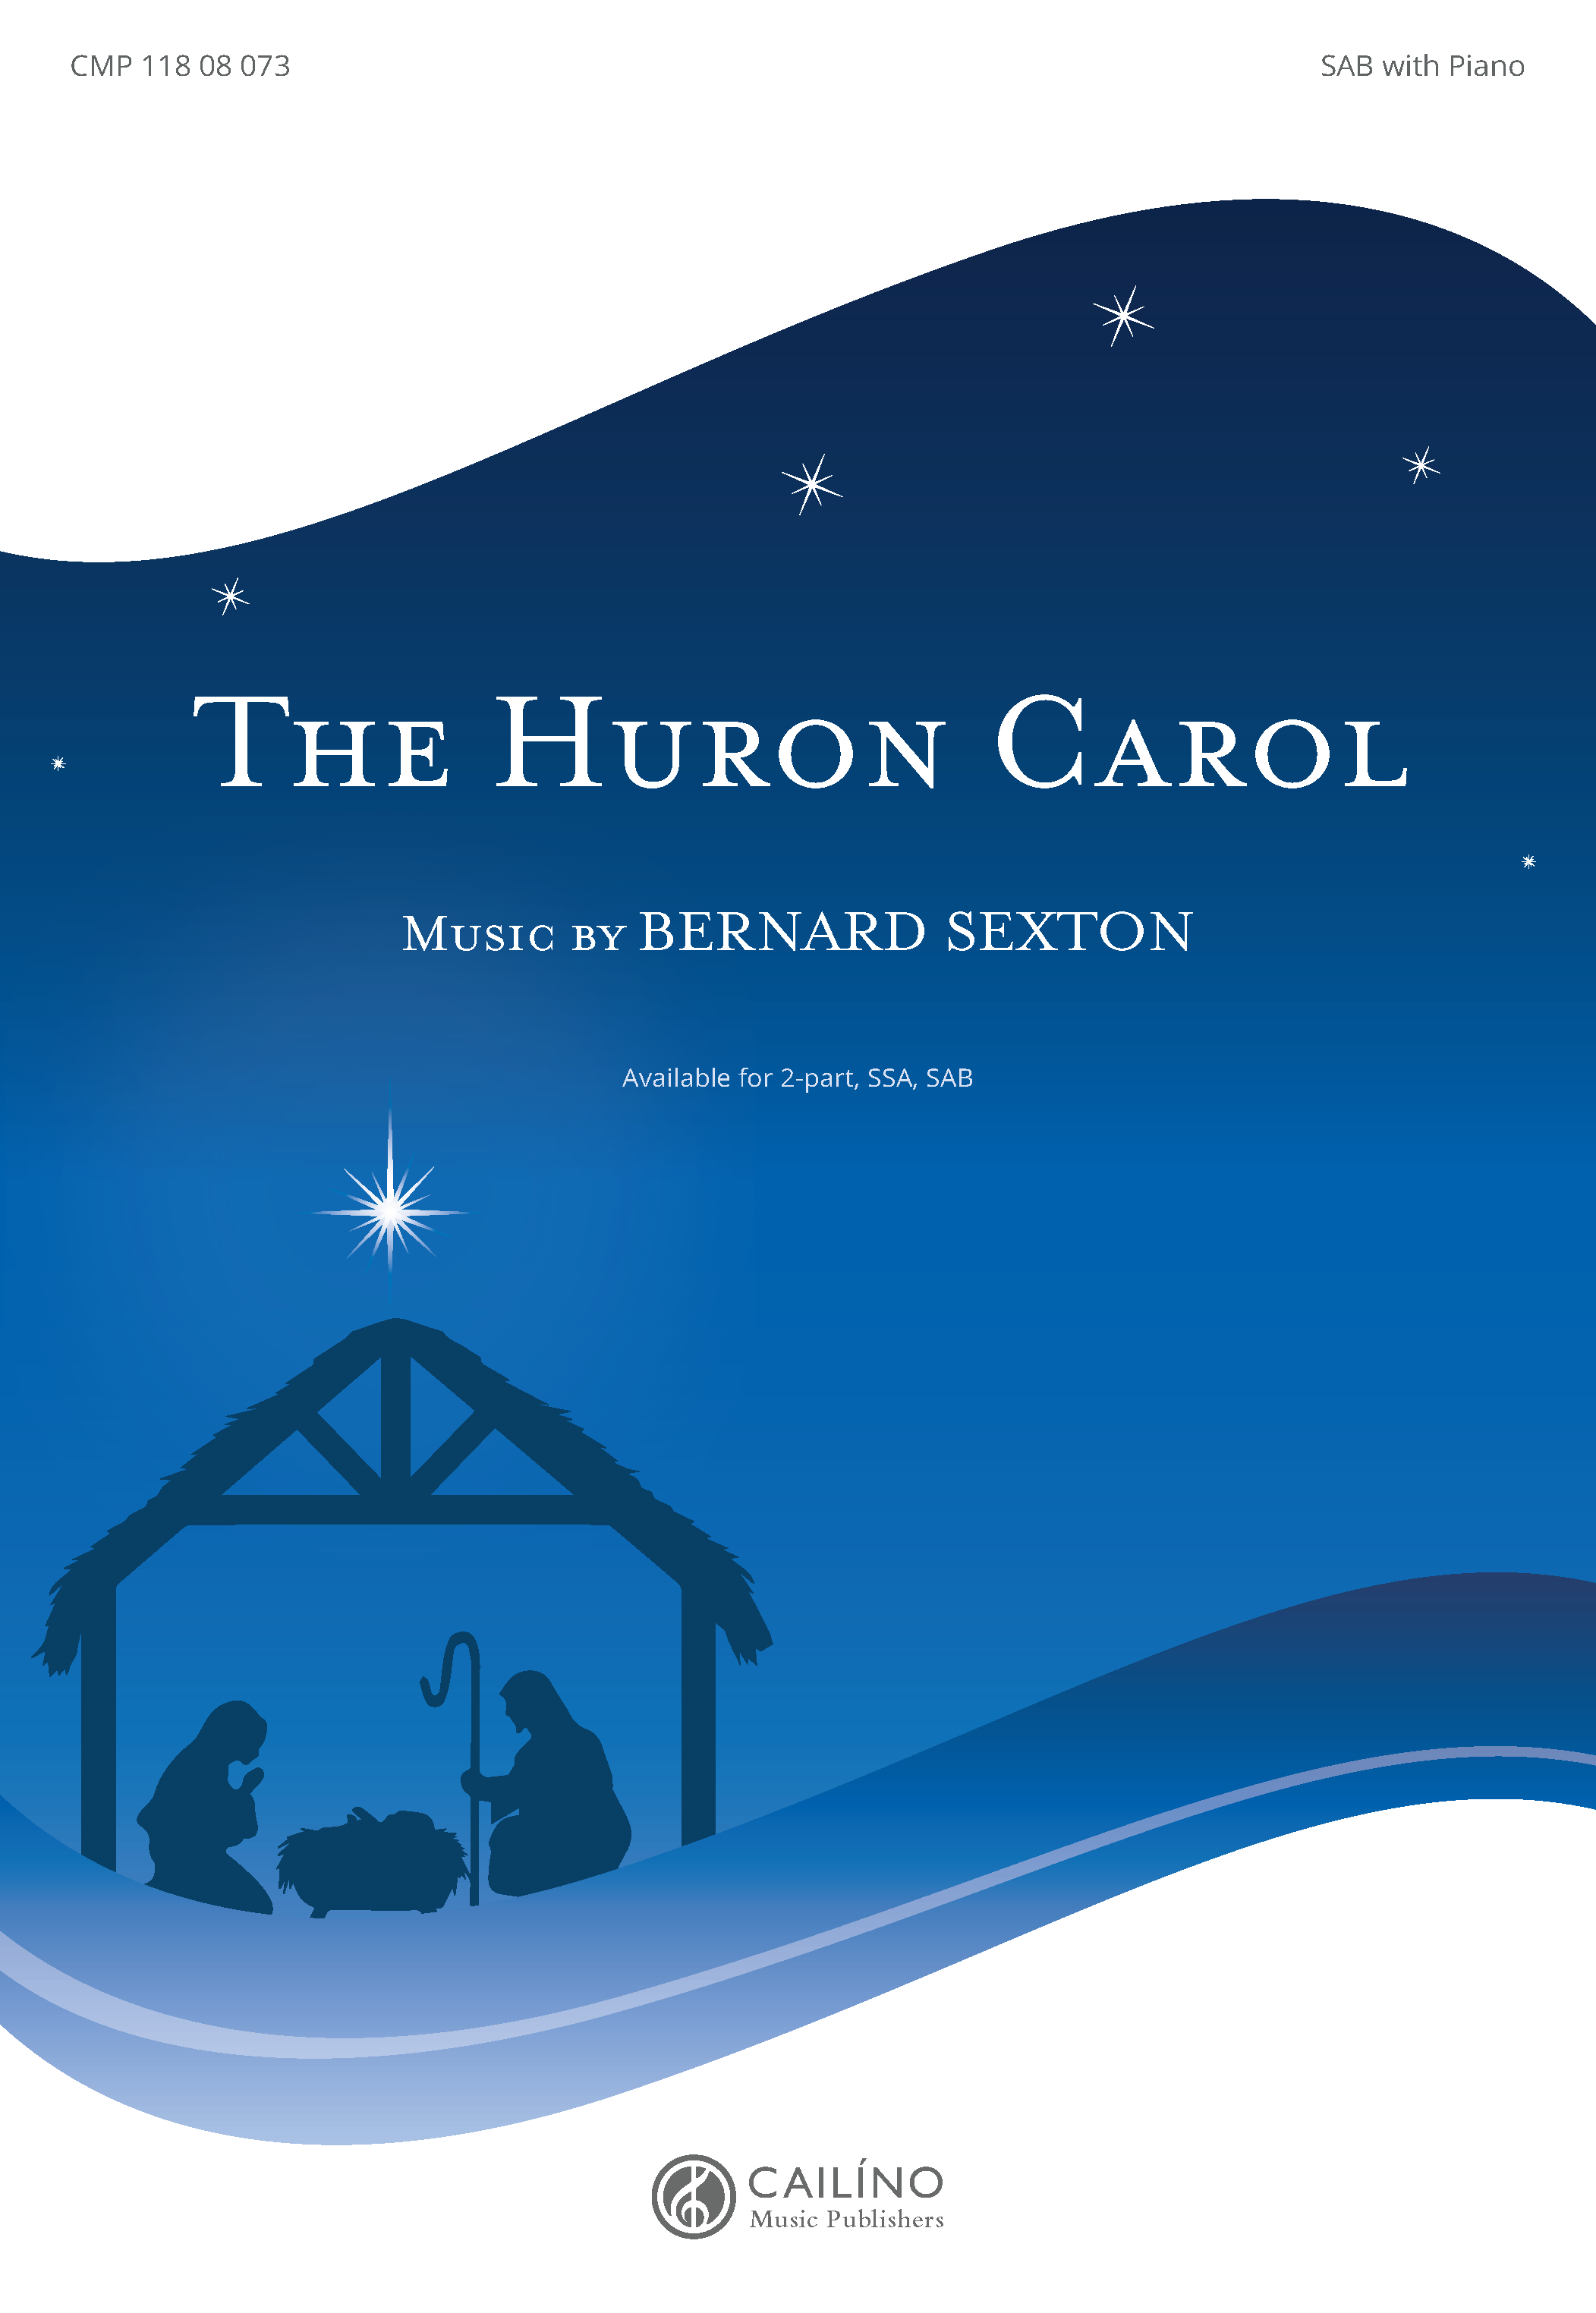 The Huron Carol SAB Cover